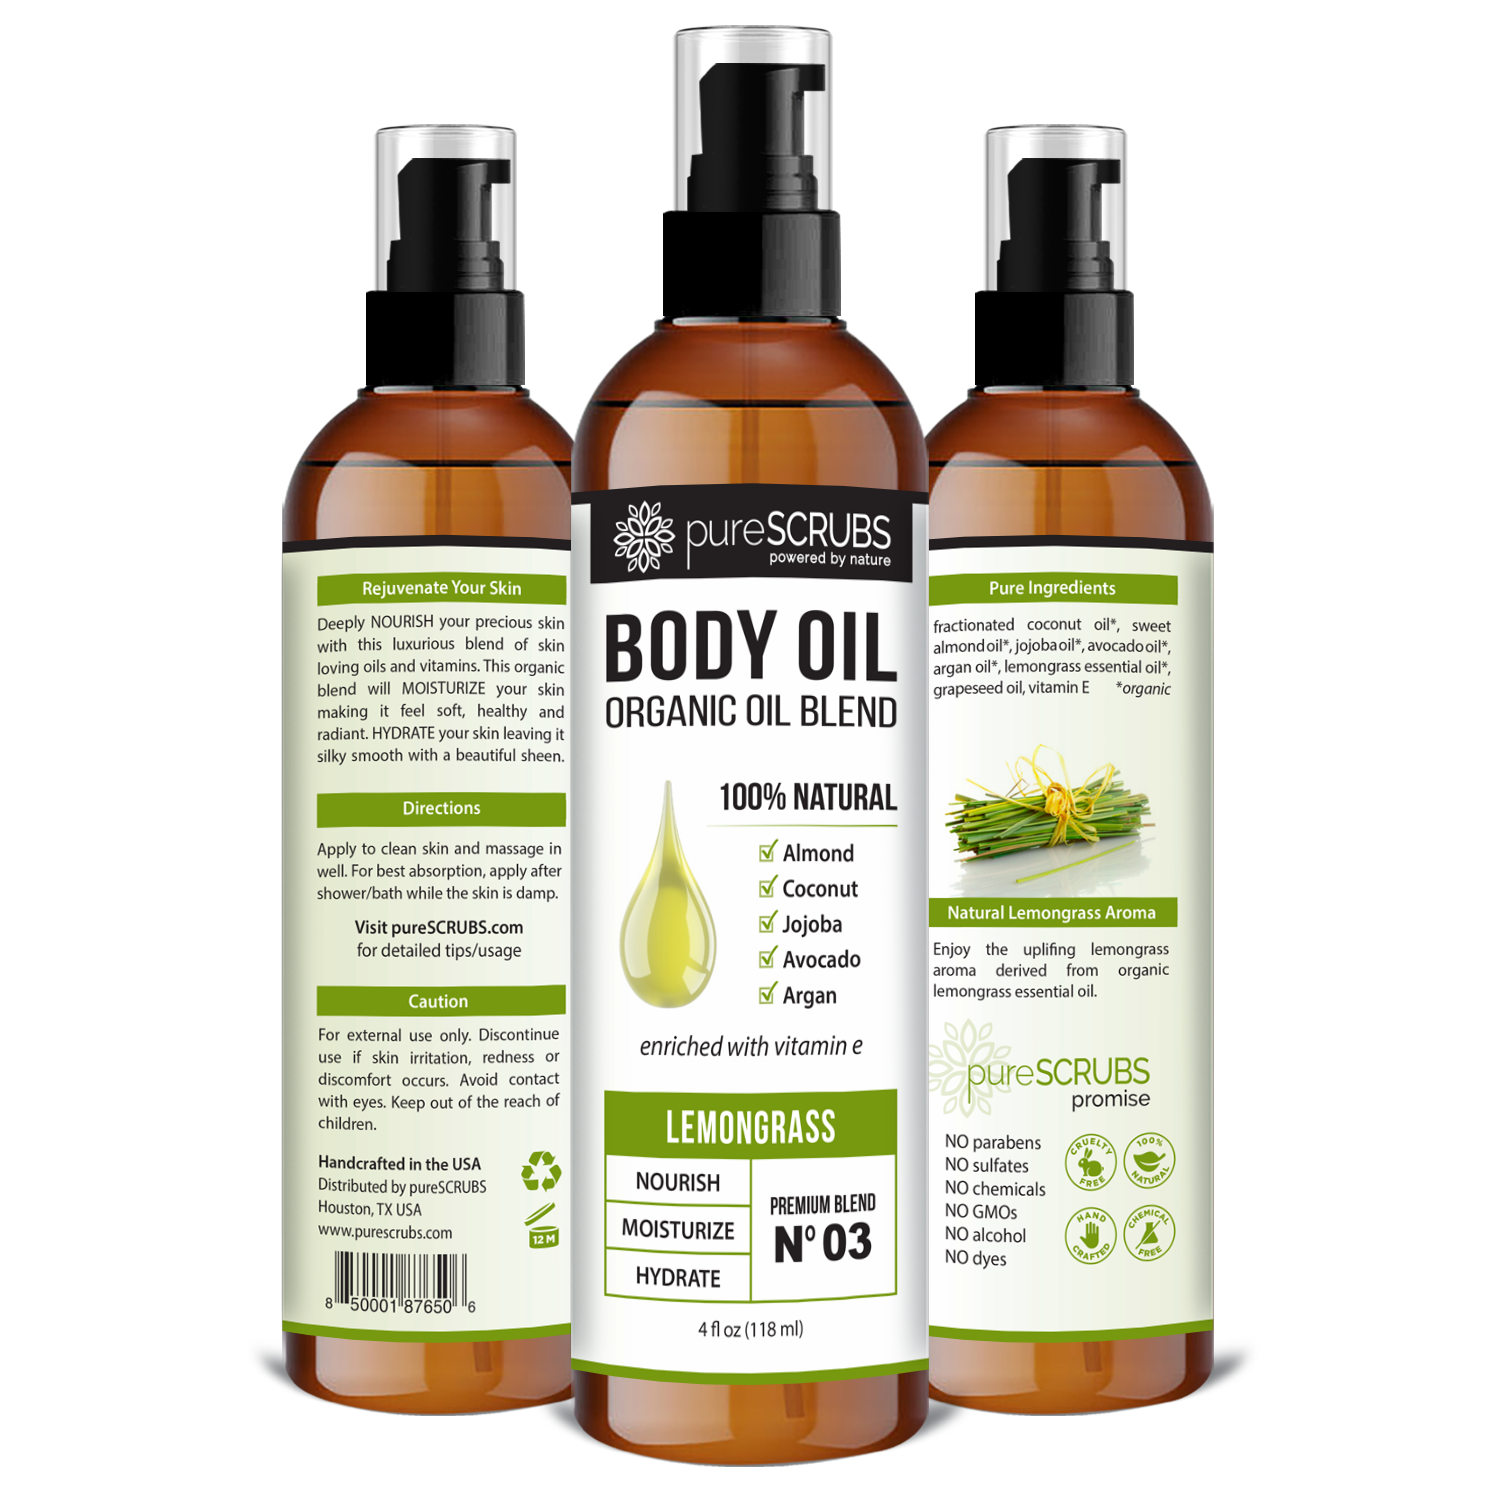 Lemongrass Body Oil / Ultra Moisturizing / Premium Blend #03